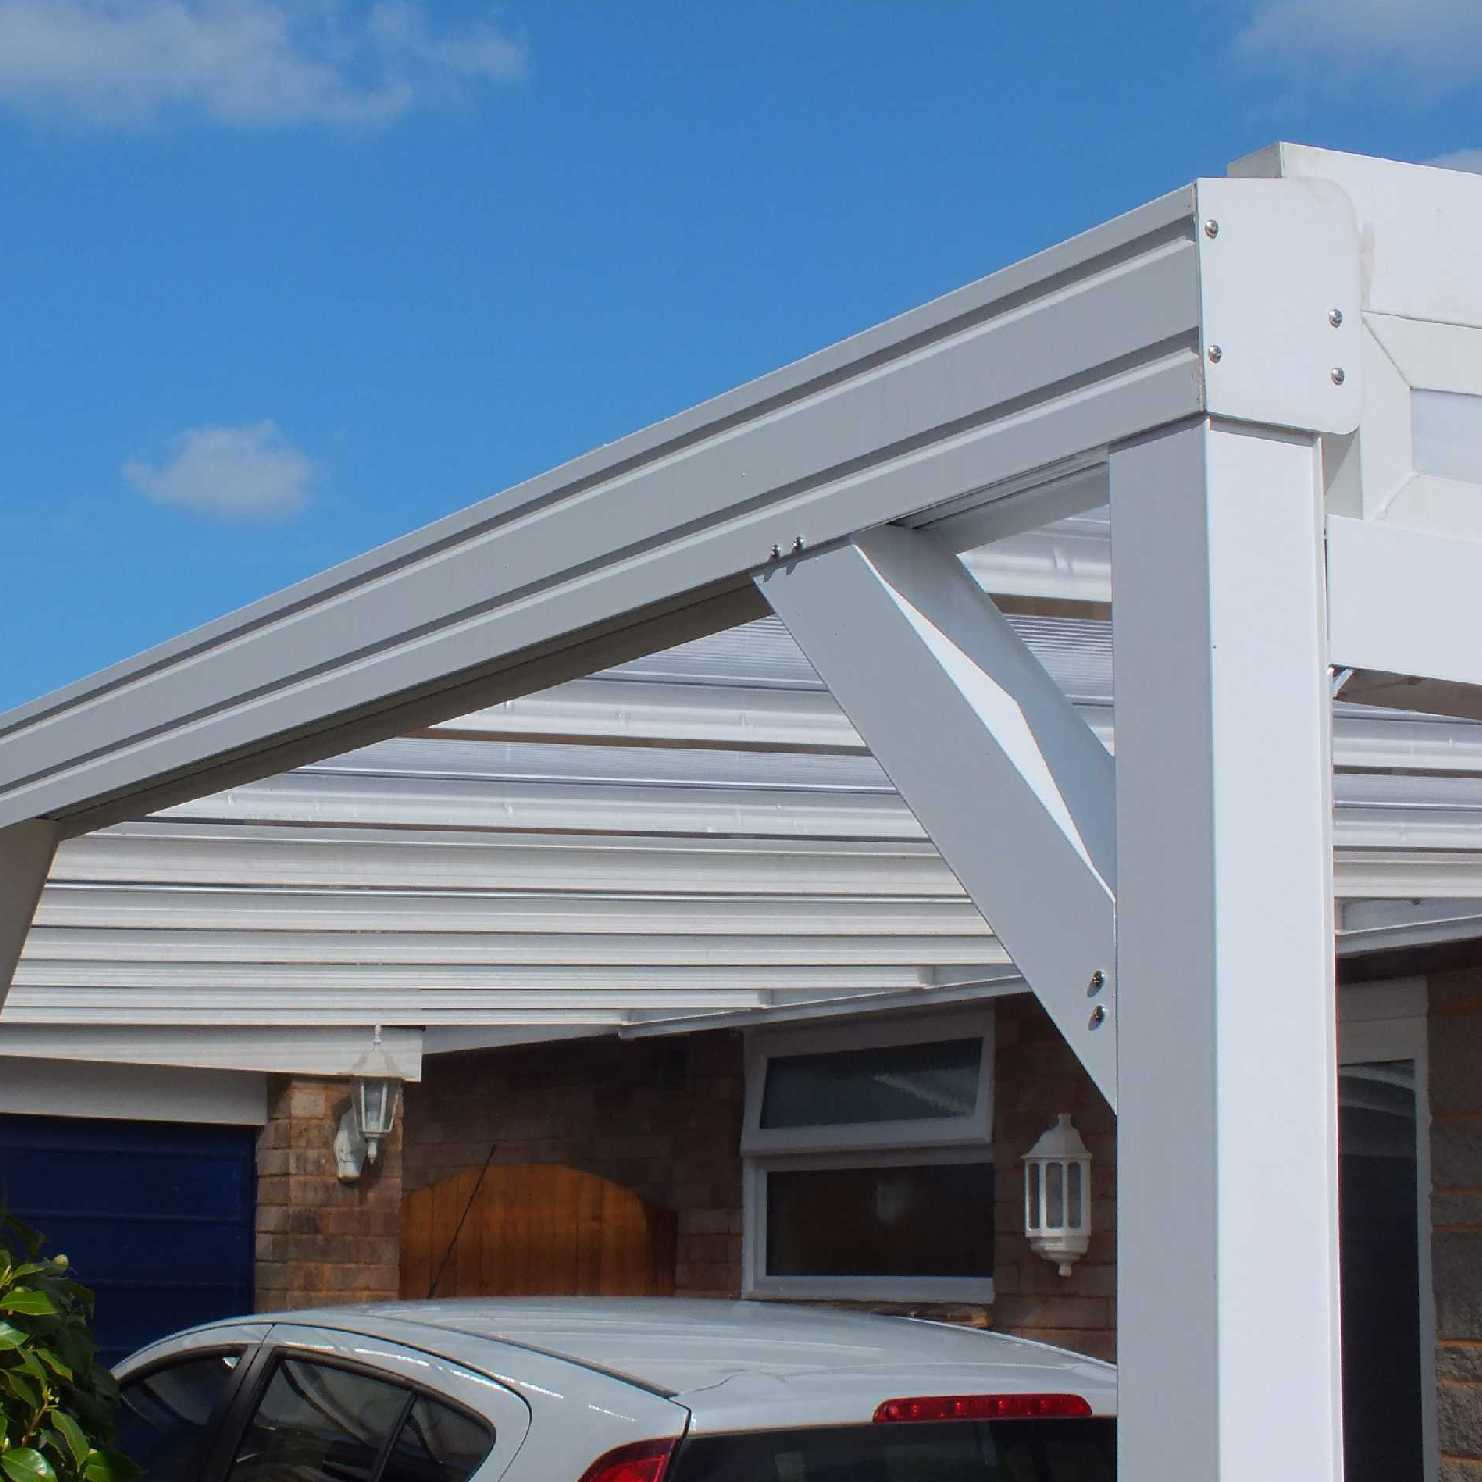 Great deals on Omega Smart Lean-To Canopy with 16mm Polycarbonate Glazing - 9.9m (W) x 4.0m (P), (5) Supporting Posts